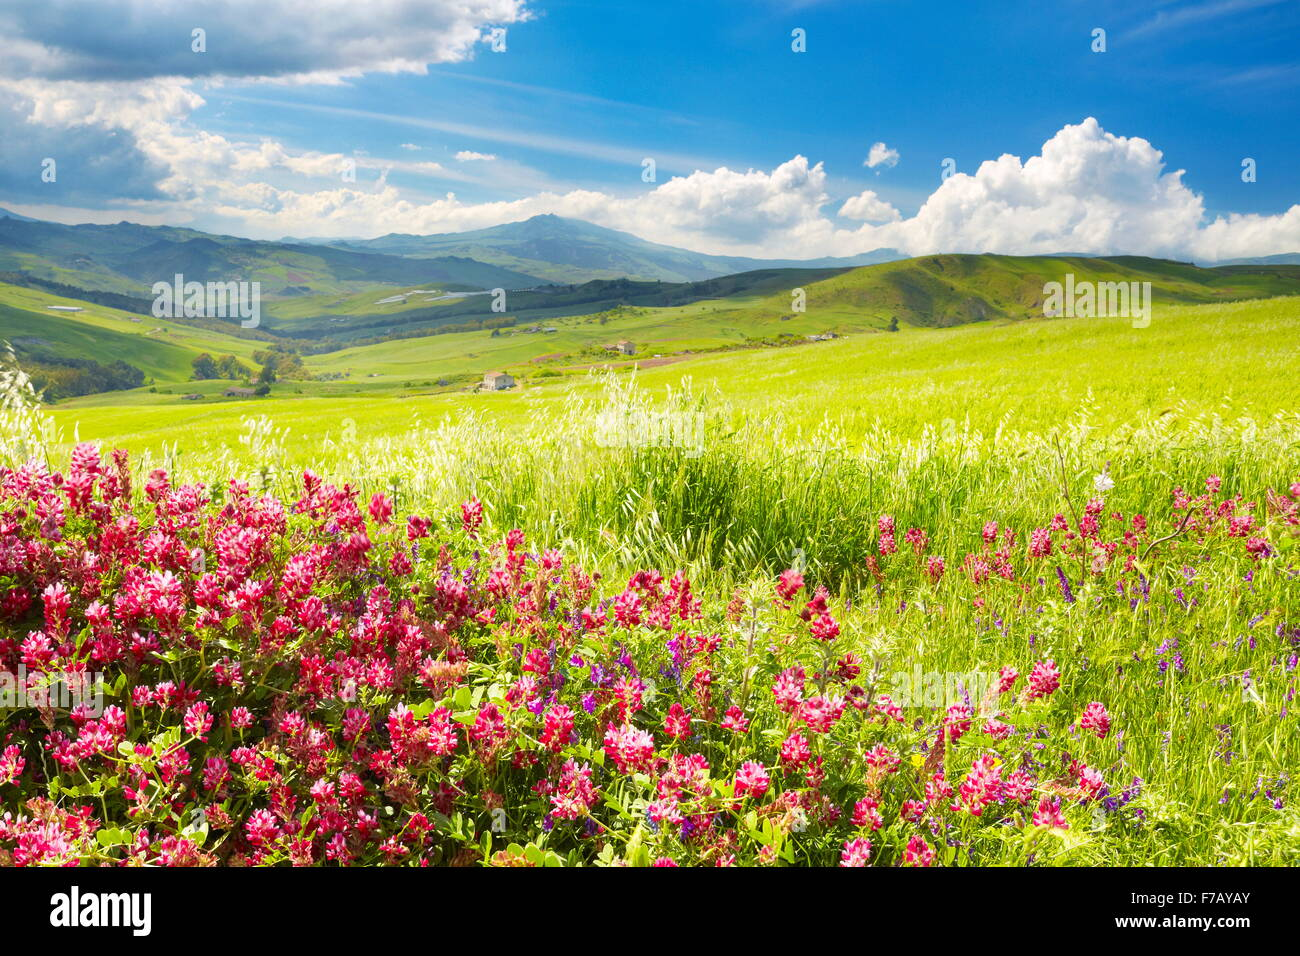 Sicily Spring Meadow Landscape With Flowers Sicily Island